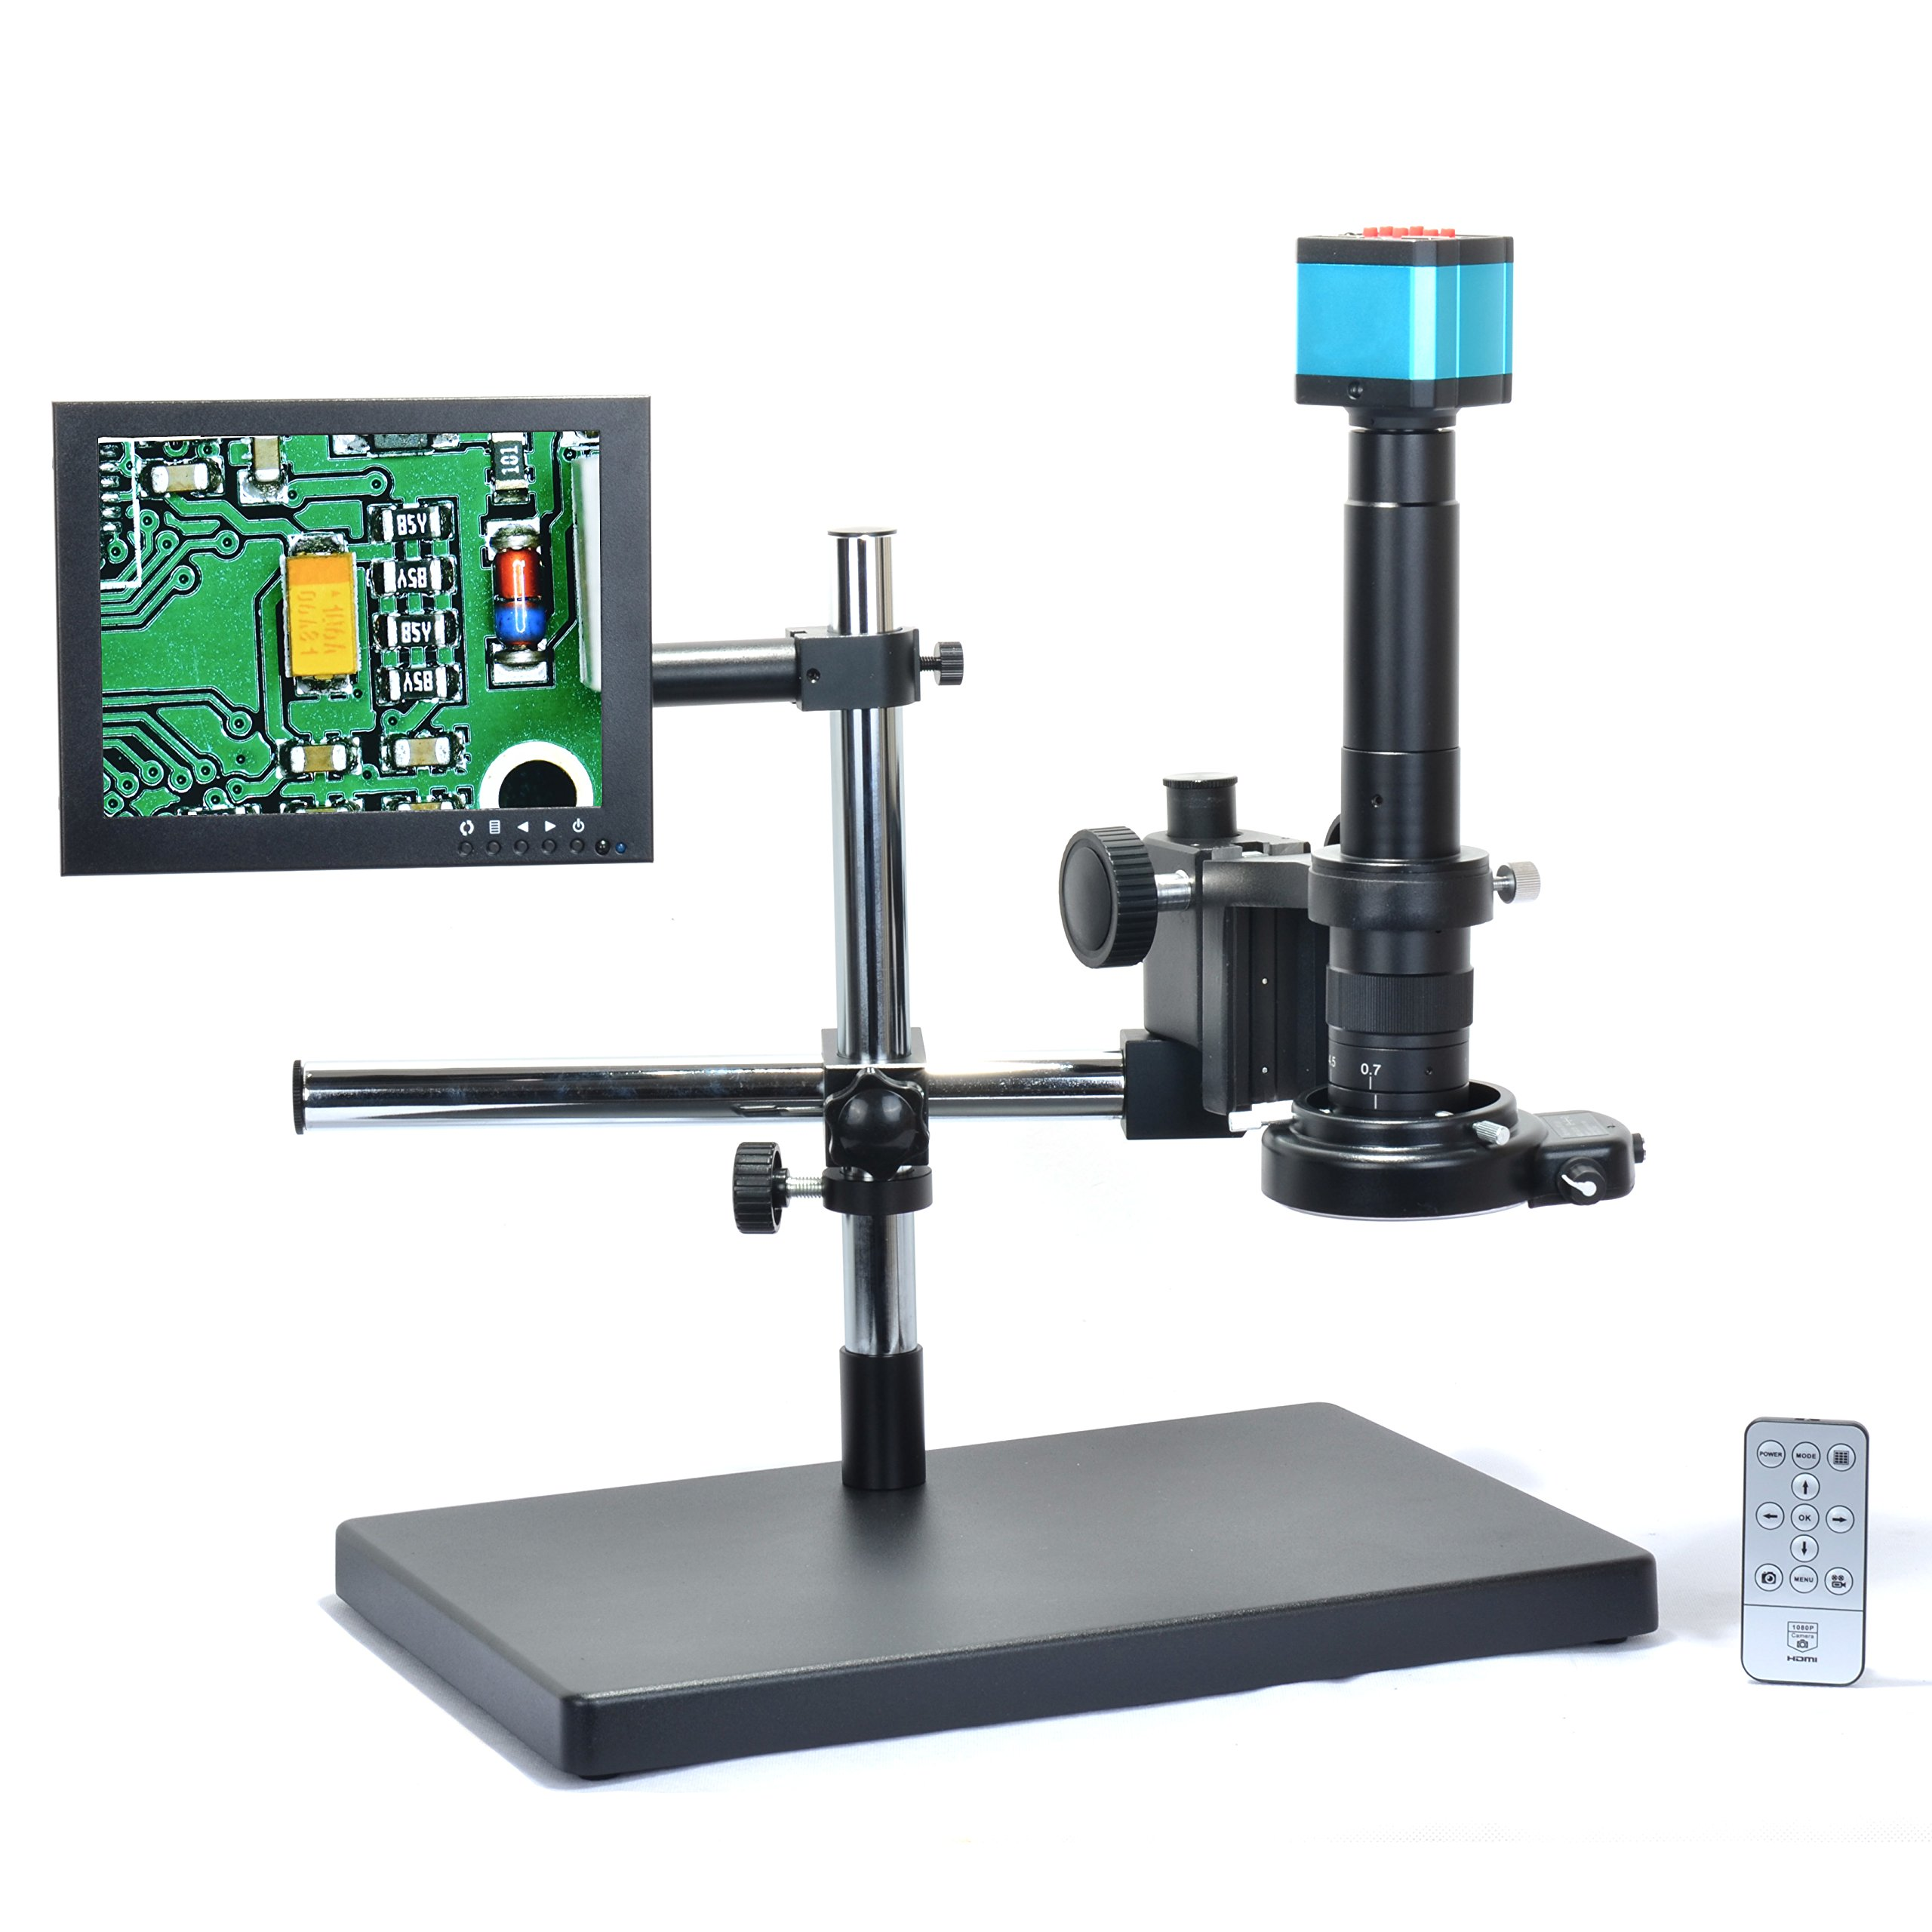 Aihome 14MP HDMI HD USB Digital Industry Video Microscope Camera Set+Big Boom Stand Universal bracket +300X C-MOUNT Lens+144 LED Light + 8'' inch HDMI LCD Monitor (300X Zoon Lens) by Aihome